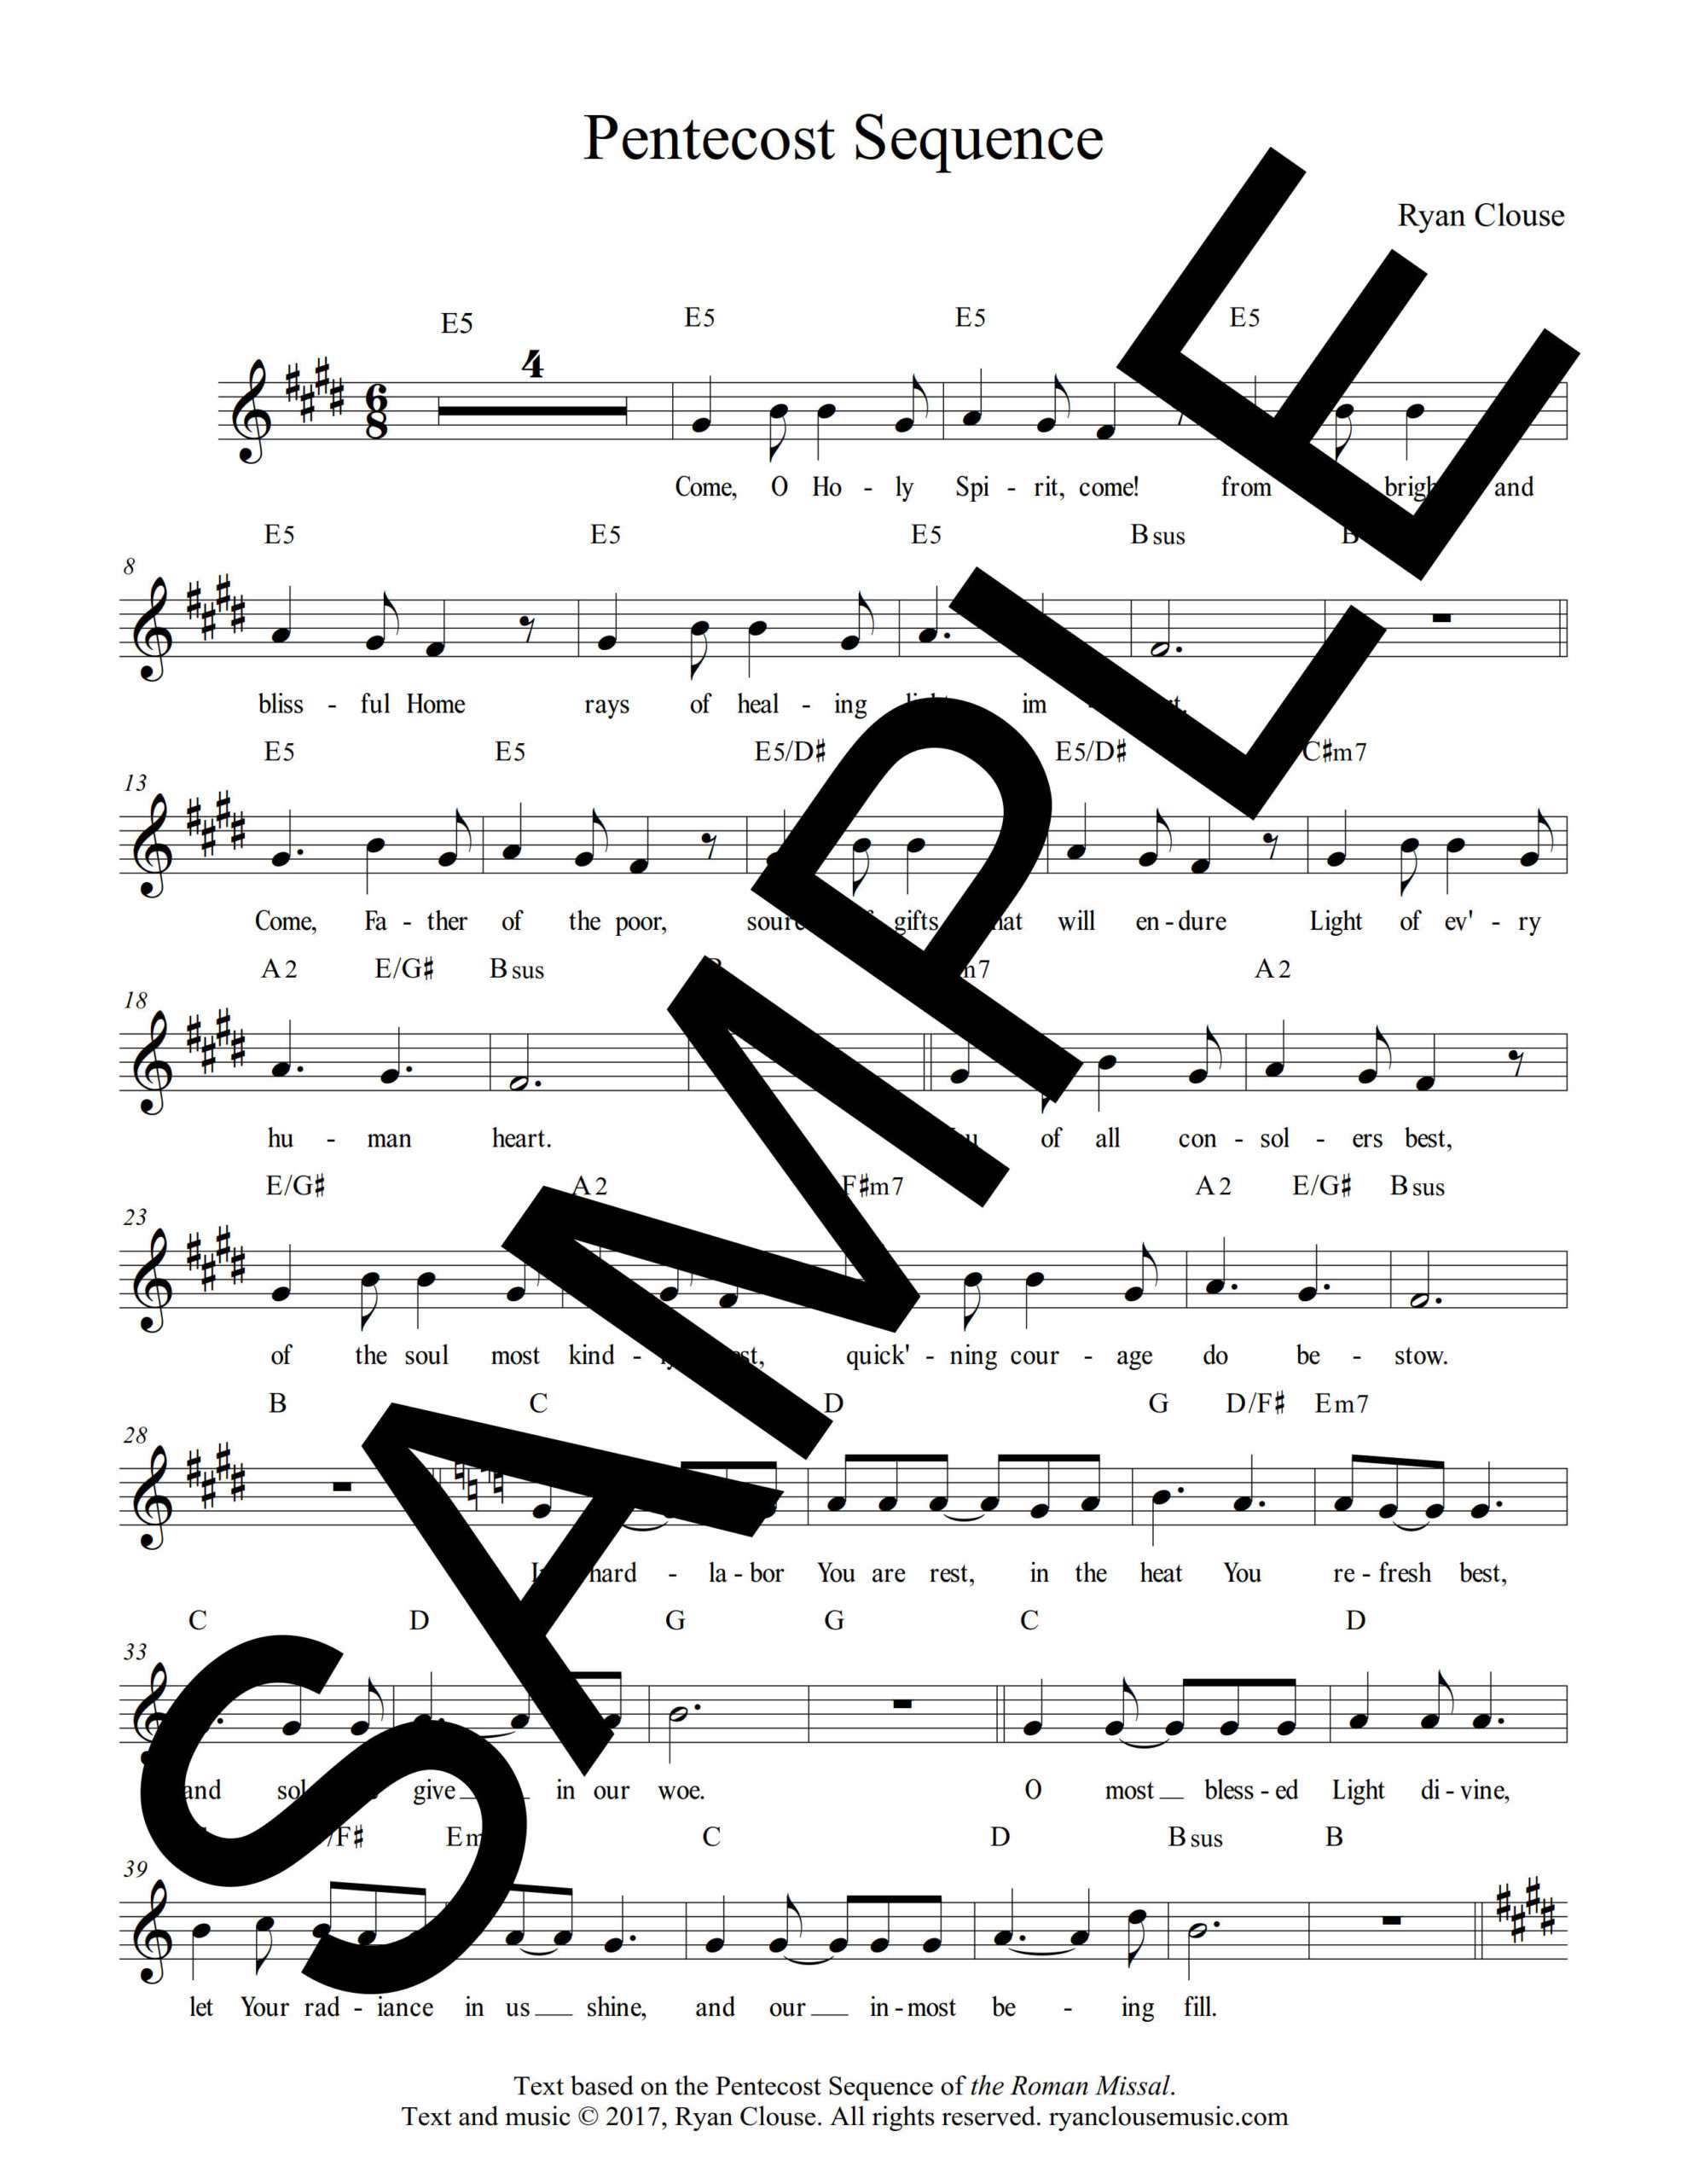 Pentecost Sequence Clouse Sample Lead Sheet 1 png